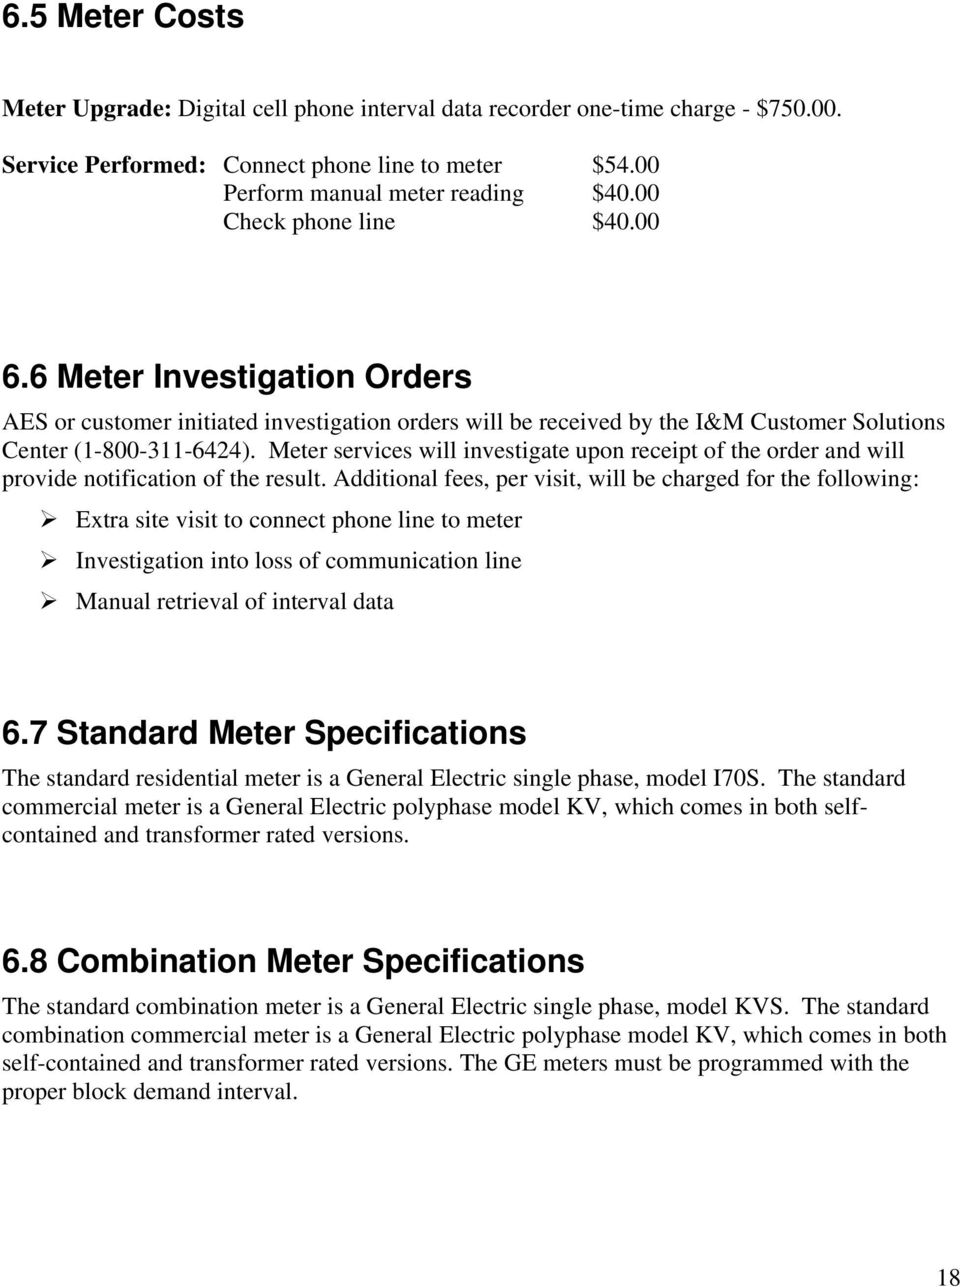 Meter services will investigate upon receipt of the order and will provide notification of the result.